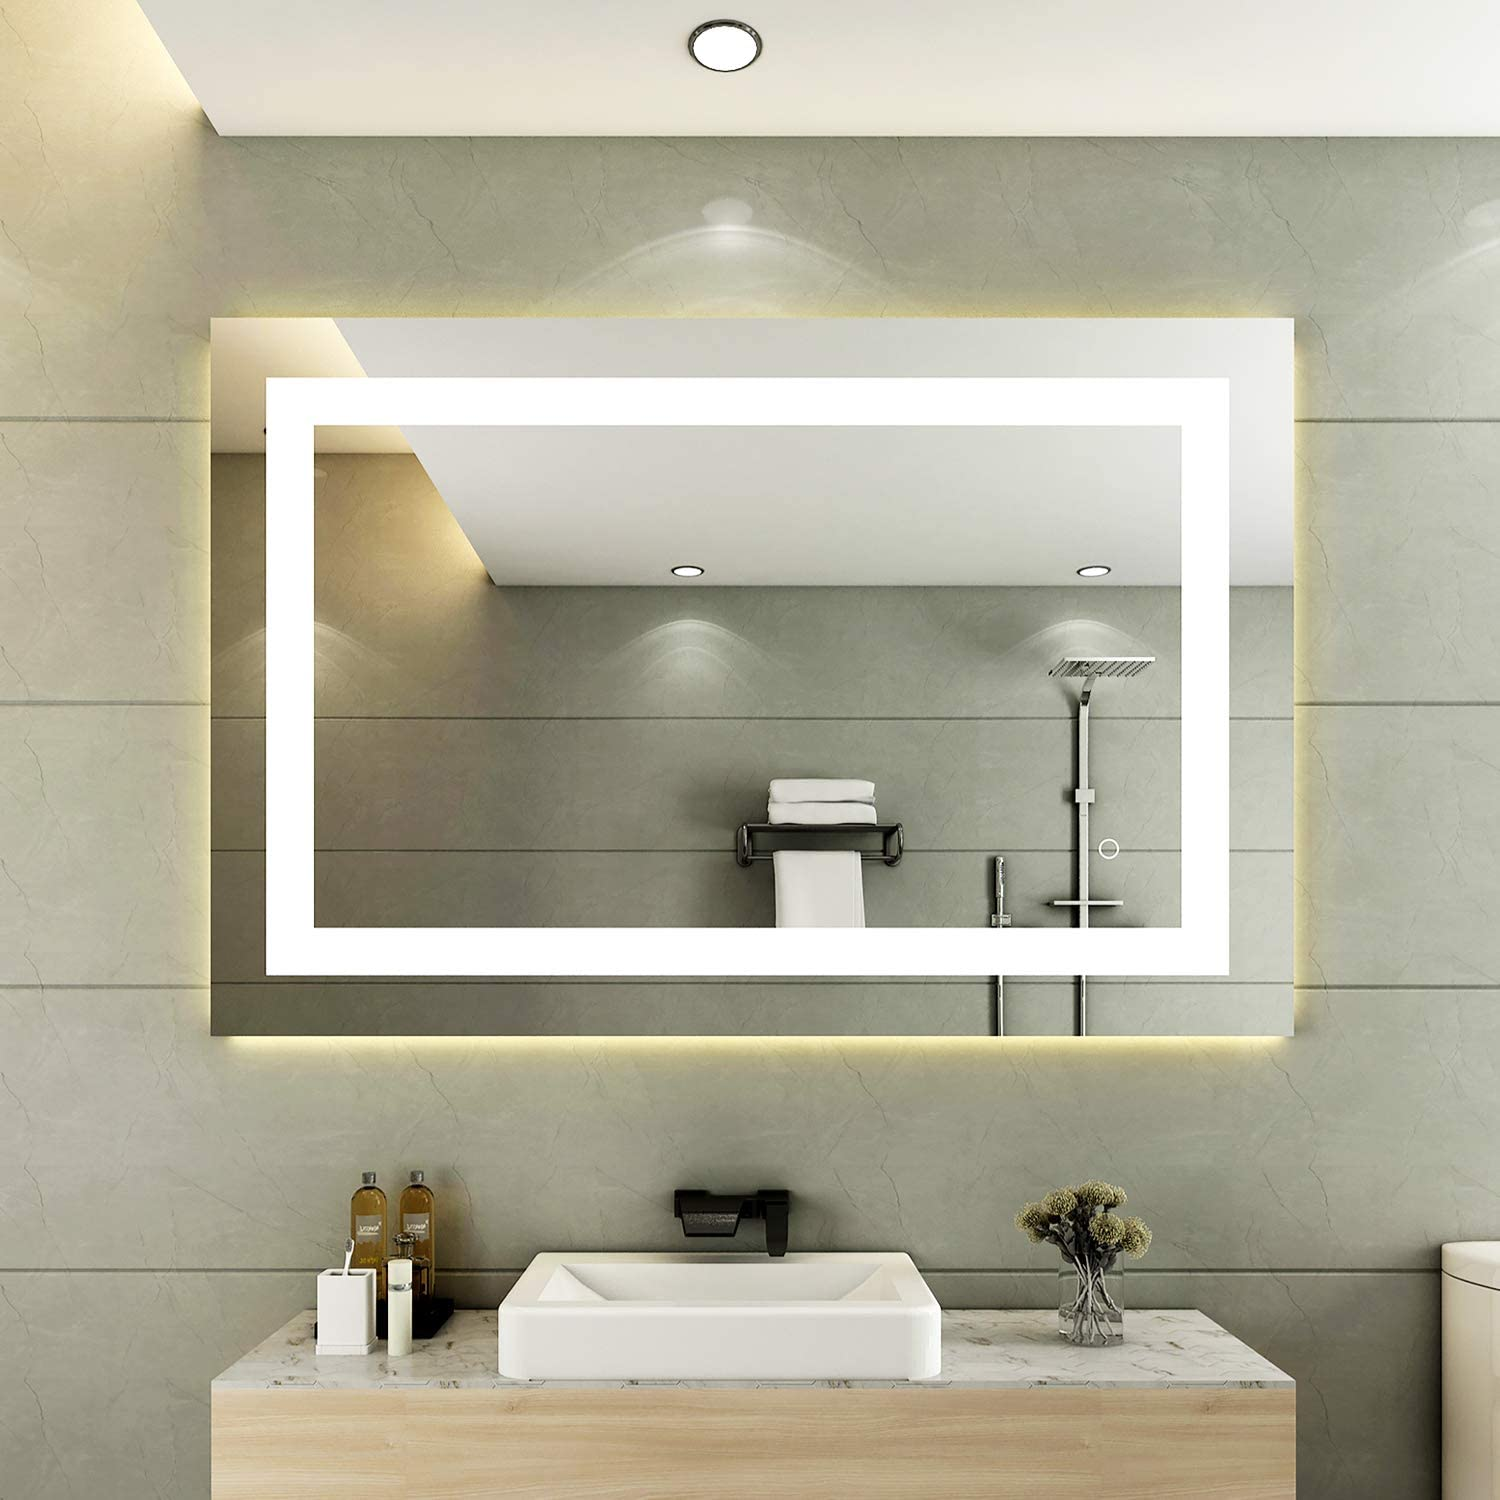 Buy 32 X 24 Inch Led Bathroom Makeup Vanity Mirror Rectangle Lighted Large Modern Wall Mirror Waterproof Anti Fog Dimmable Backlit Mirror With Lights Online In Vietnam B08yjbnh2s